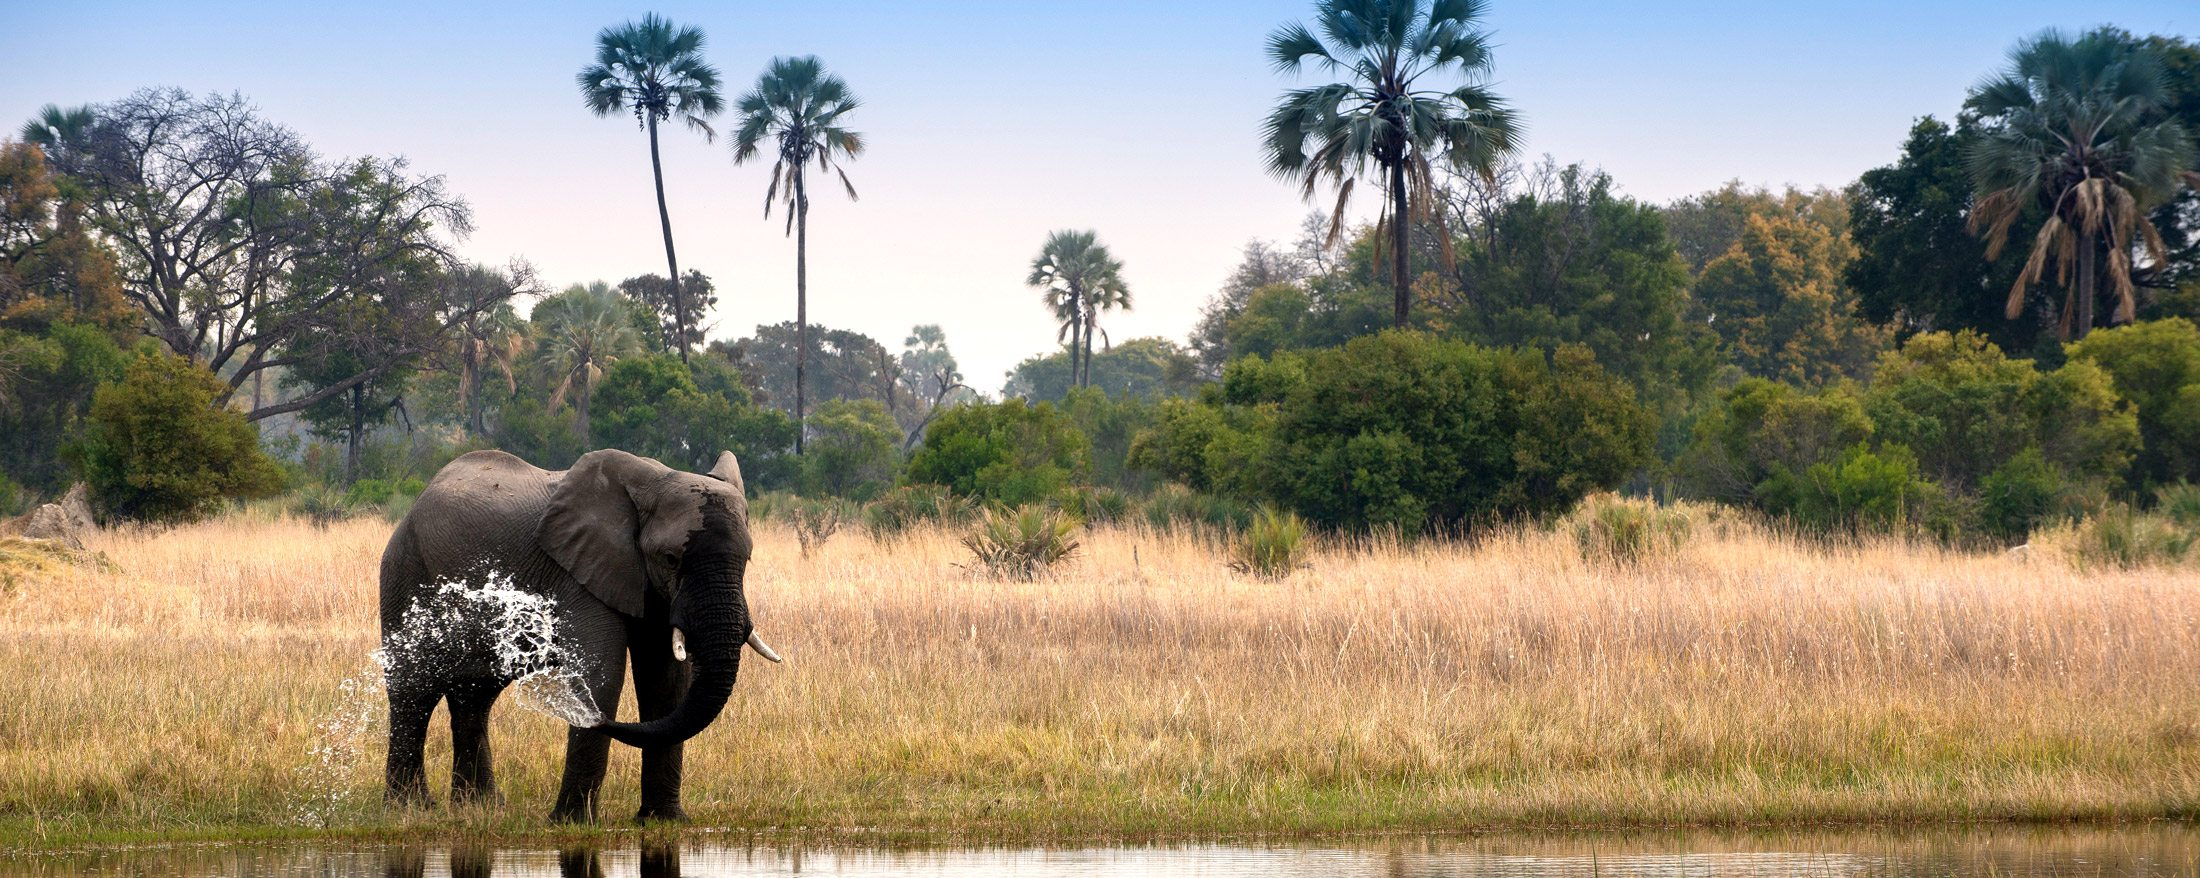 This elephant is cooling itself off in the waters of the Okavango.